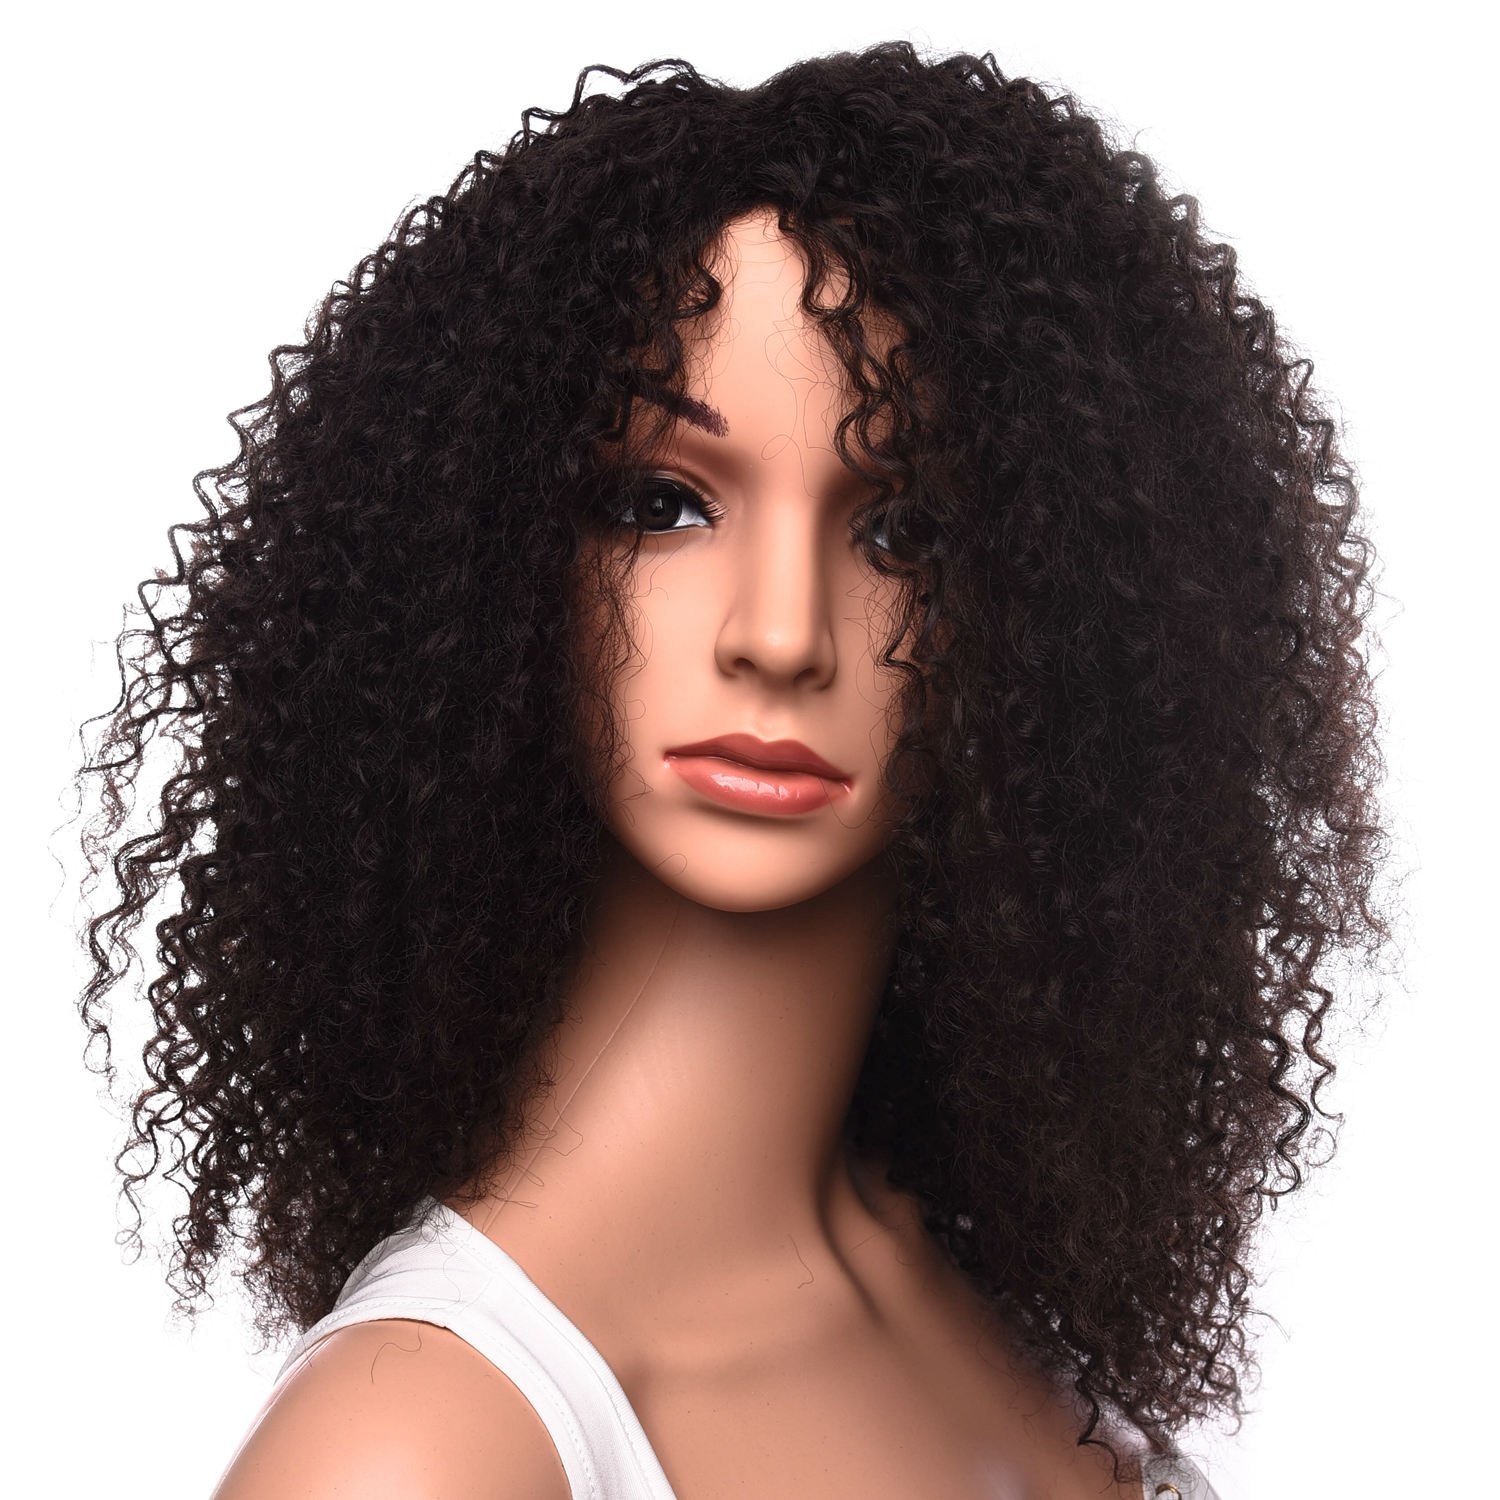 Very Cool Afro Wig with Kanekalon fibers